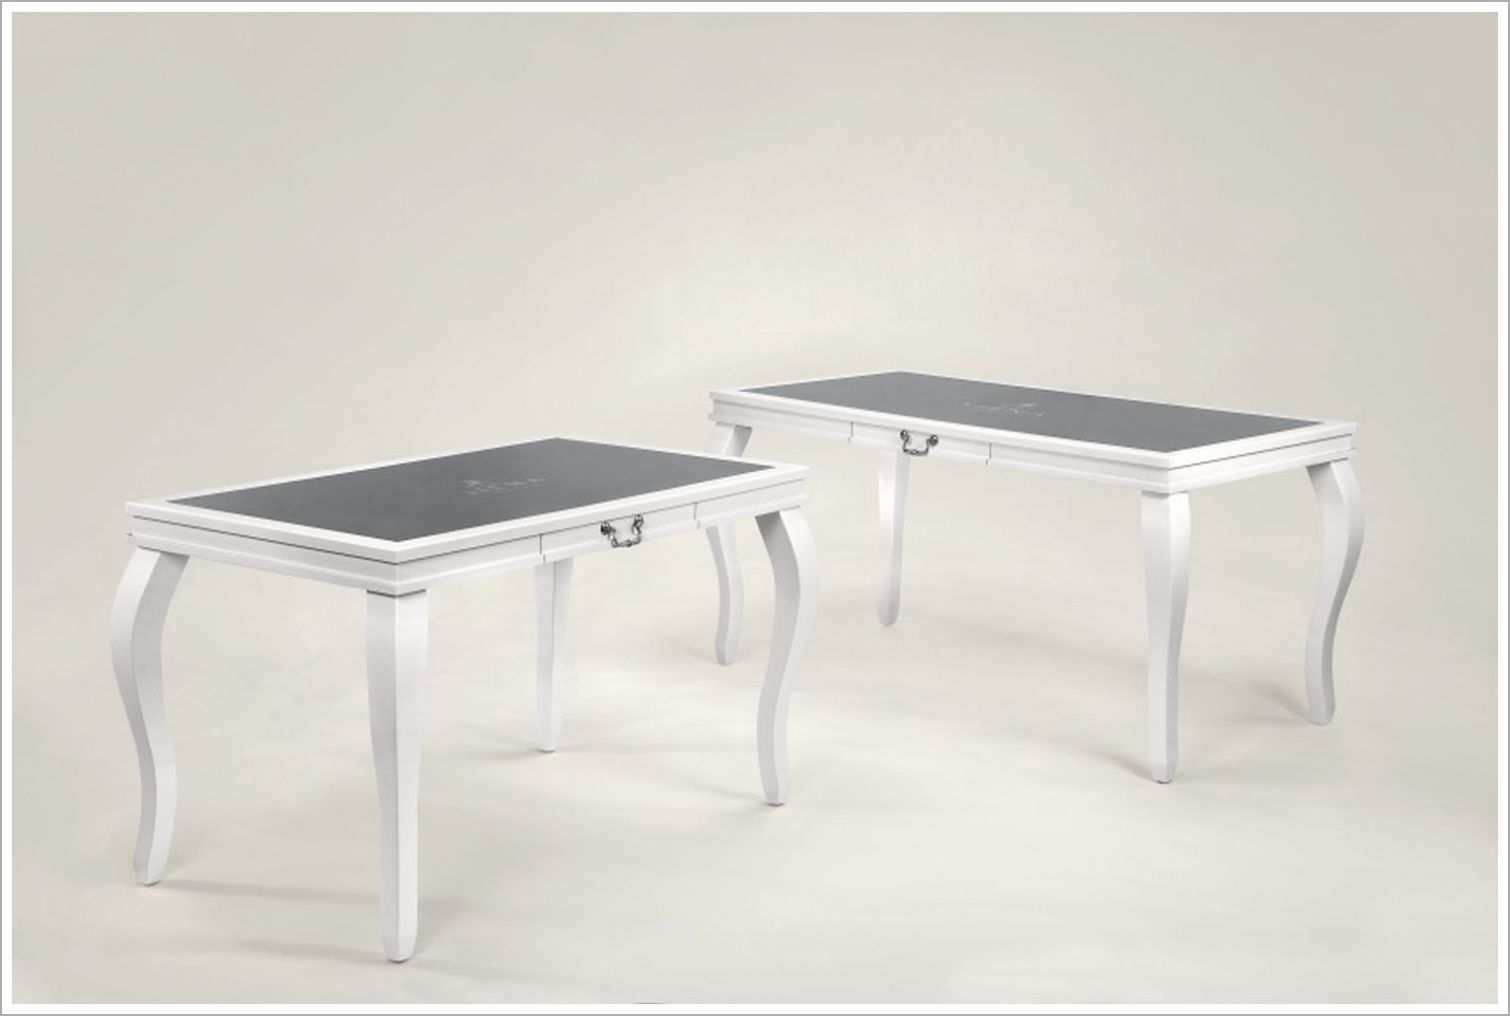 White Hotel Desks with Inset Glass Top and Cabriole Legs